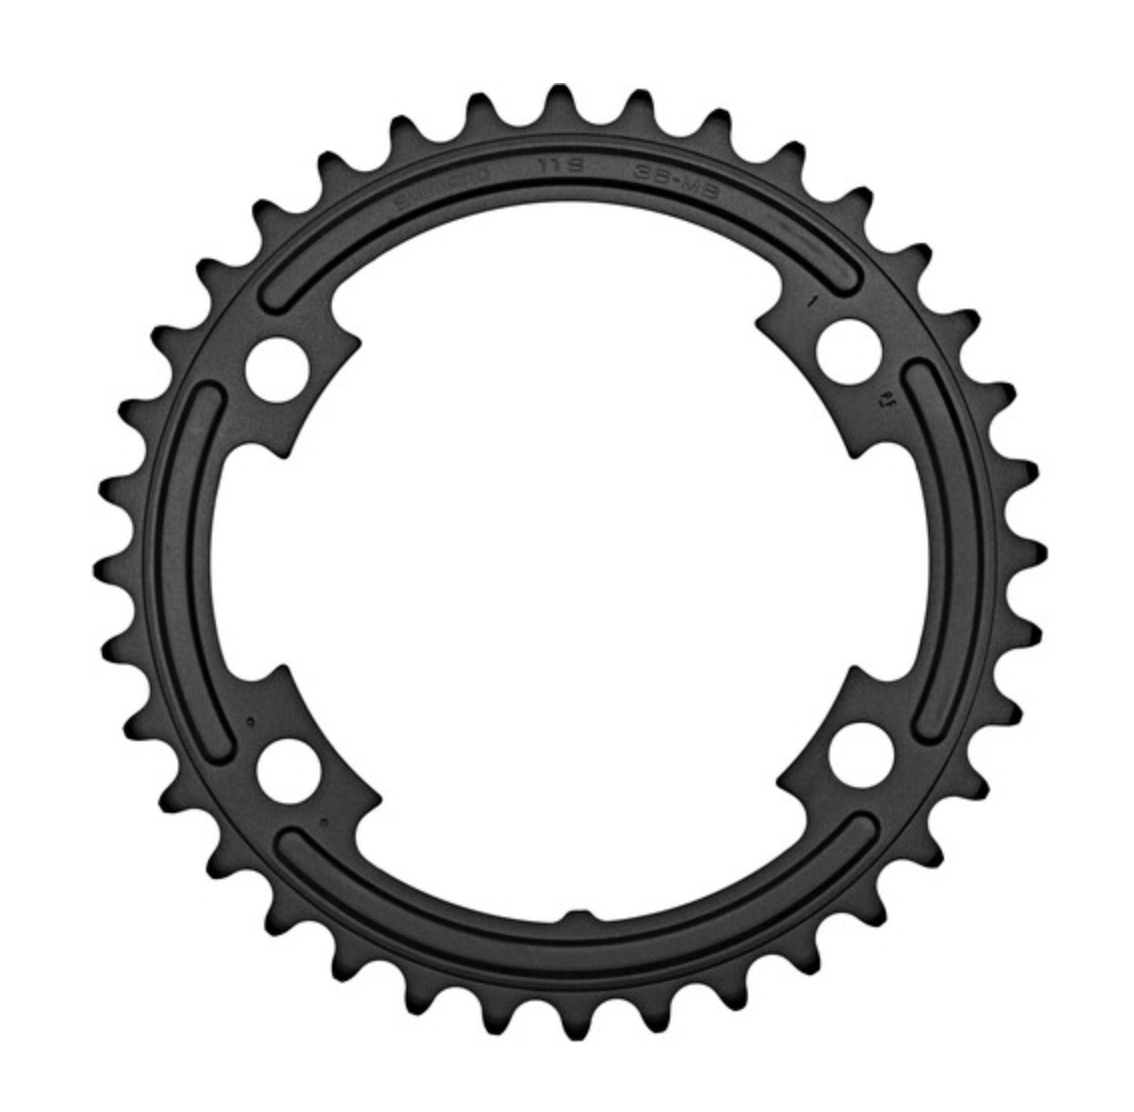 Shimano Klinge 105 FC-5800 - 11 speed BCD 110/4 - 34T - Y1PH34000 | chainrings_component